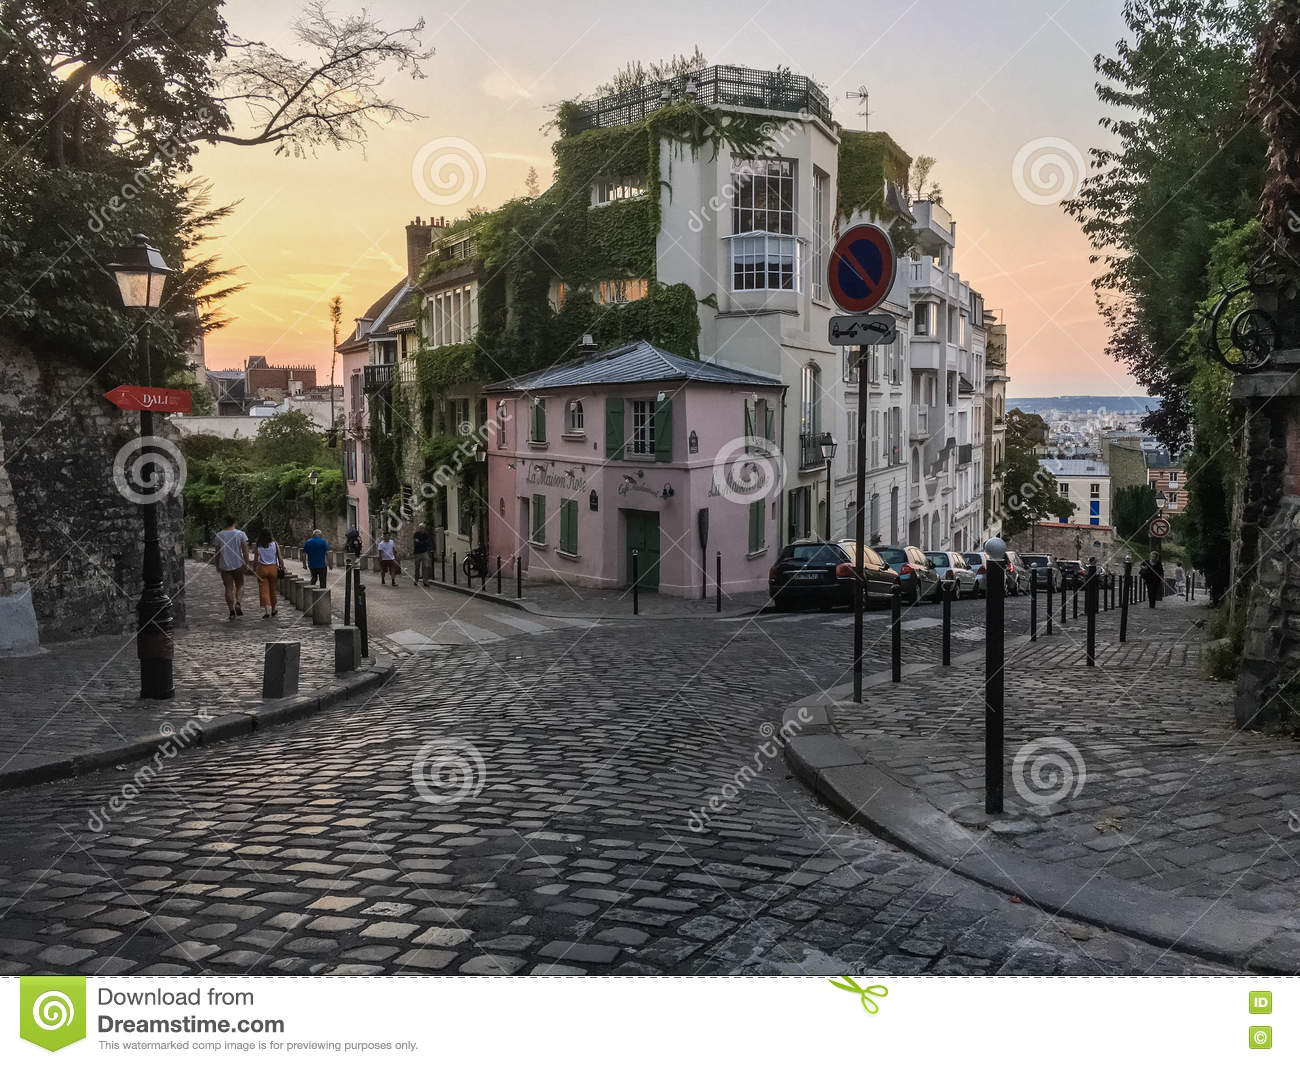 Former restaurant la maison rose lies at the corner of two cobbled streets on montmartre paris france at sunset on a late summer evening